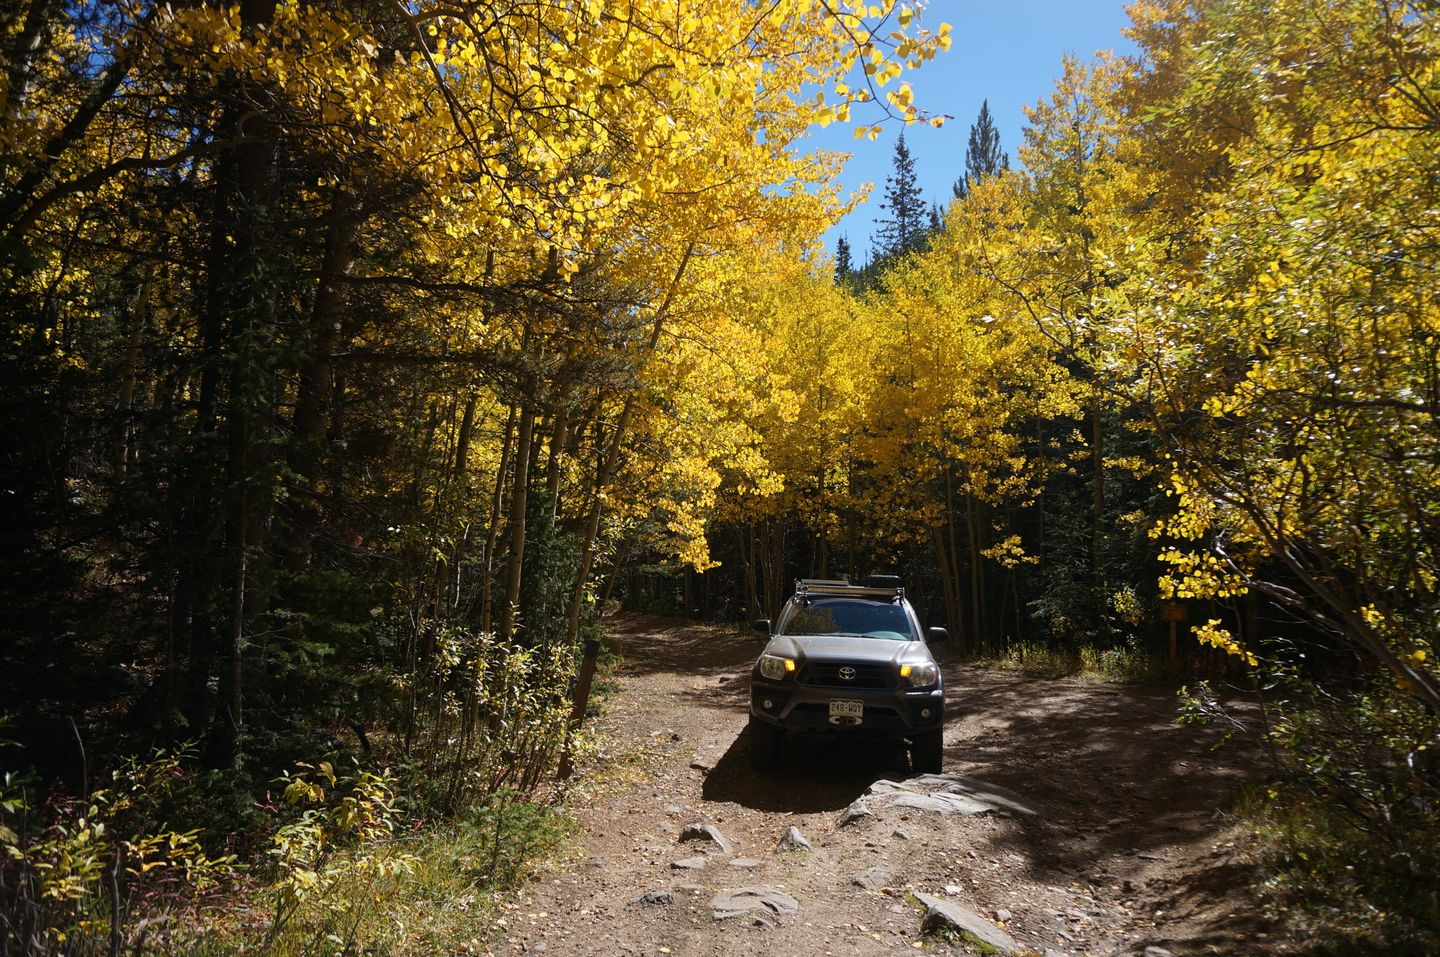 Highlight: Mosquito Creek Road